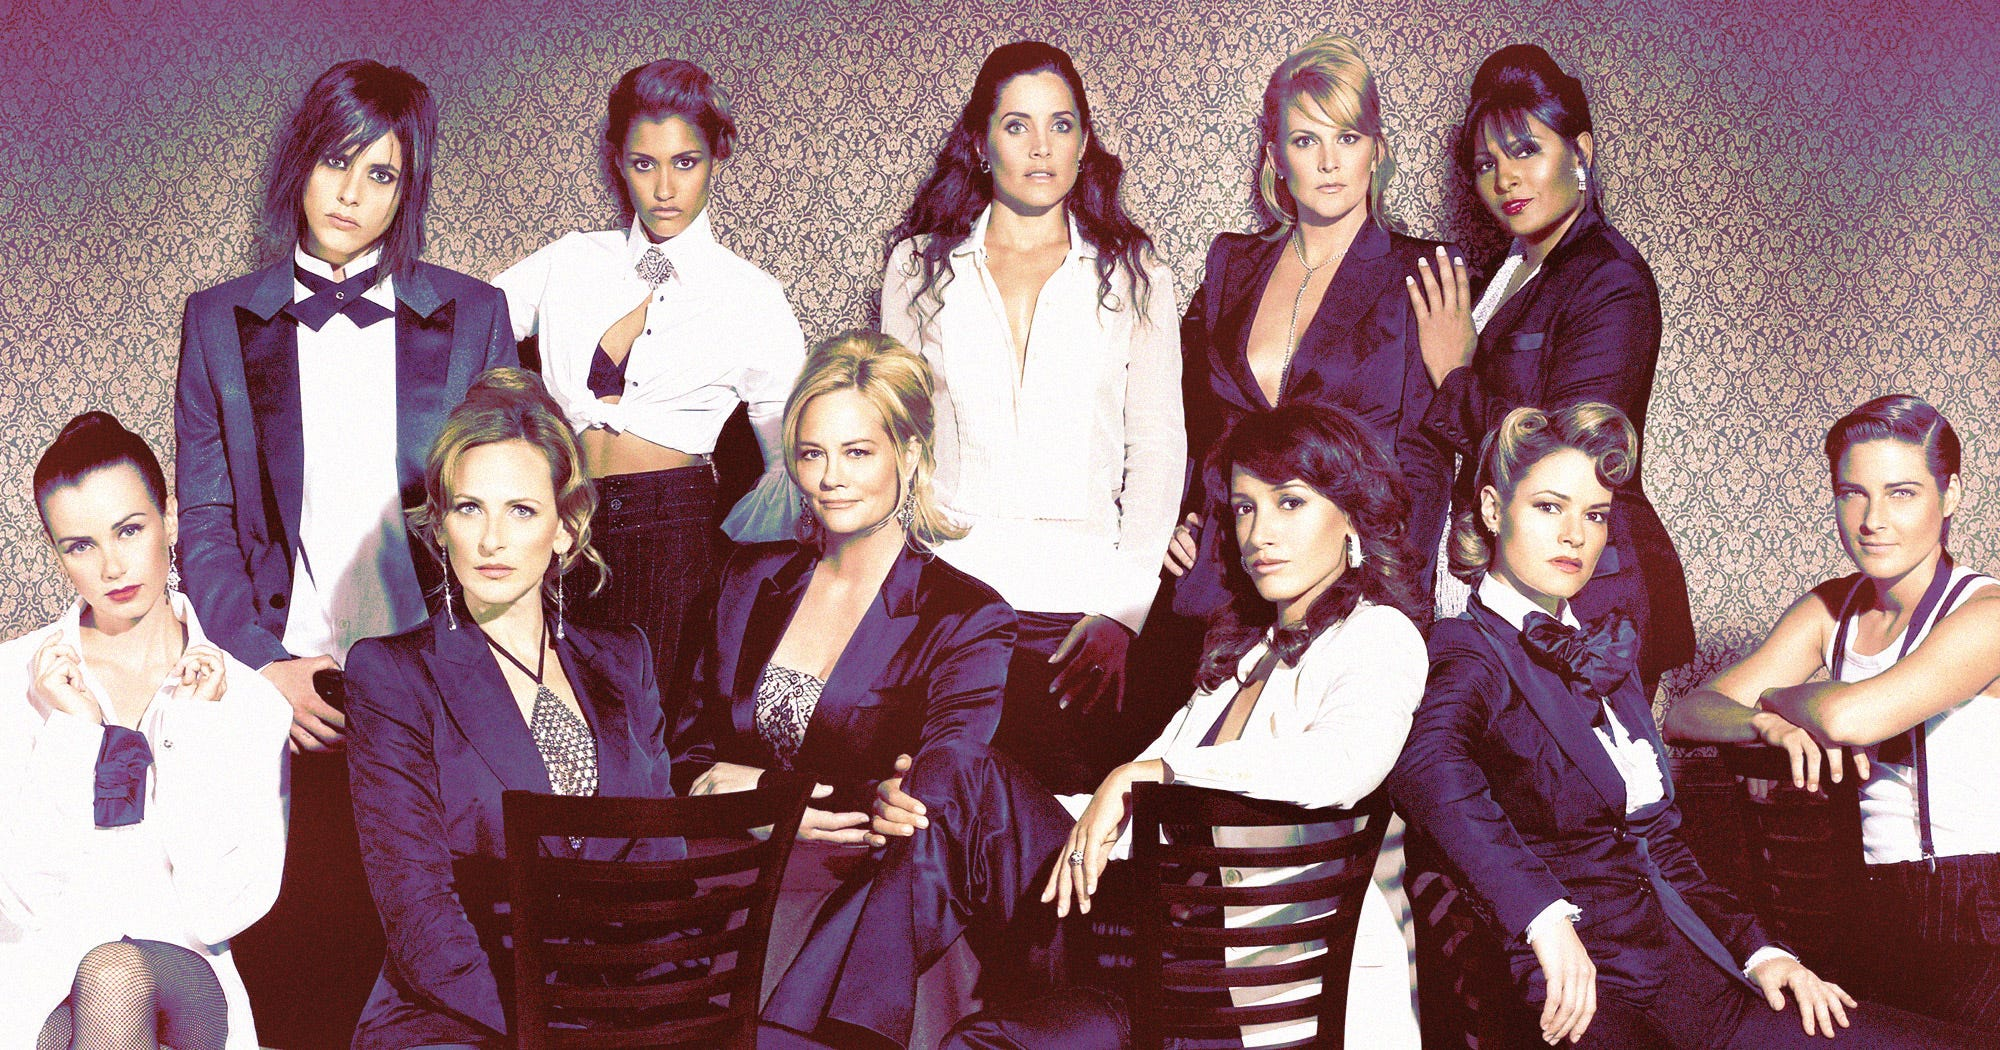 """The Queer TV Renaissance Continues With """"The L Word"""" Revival"""